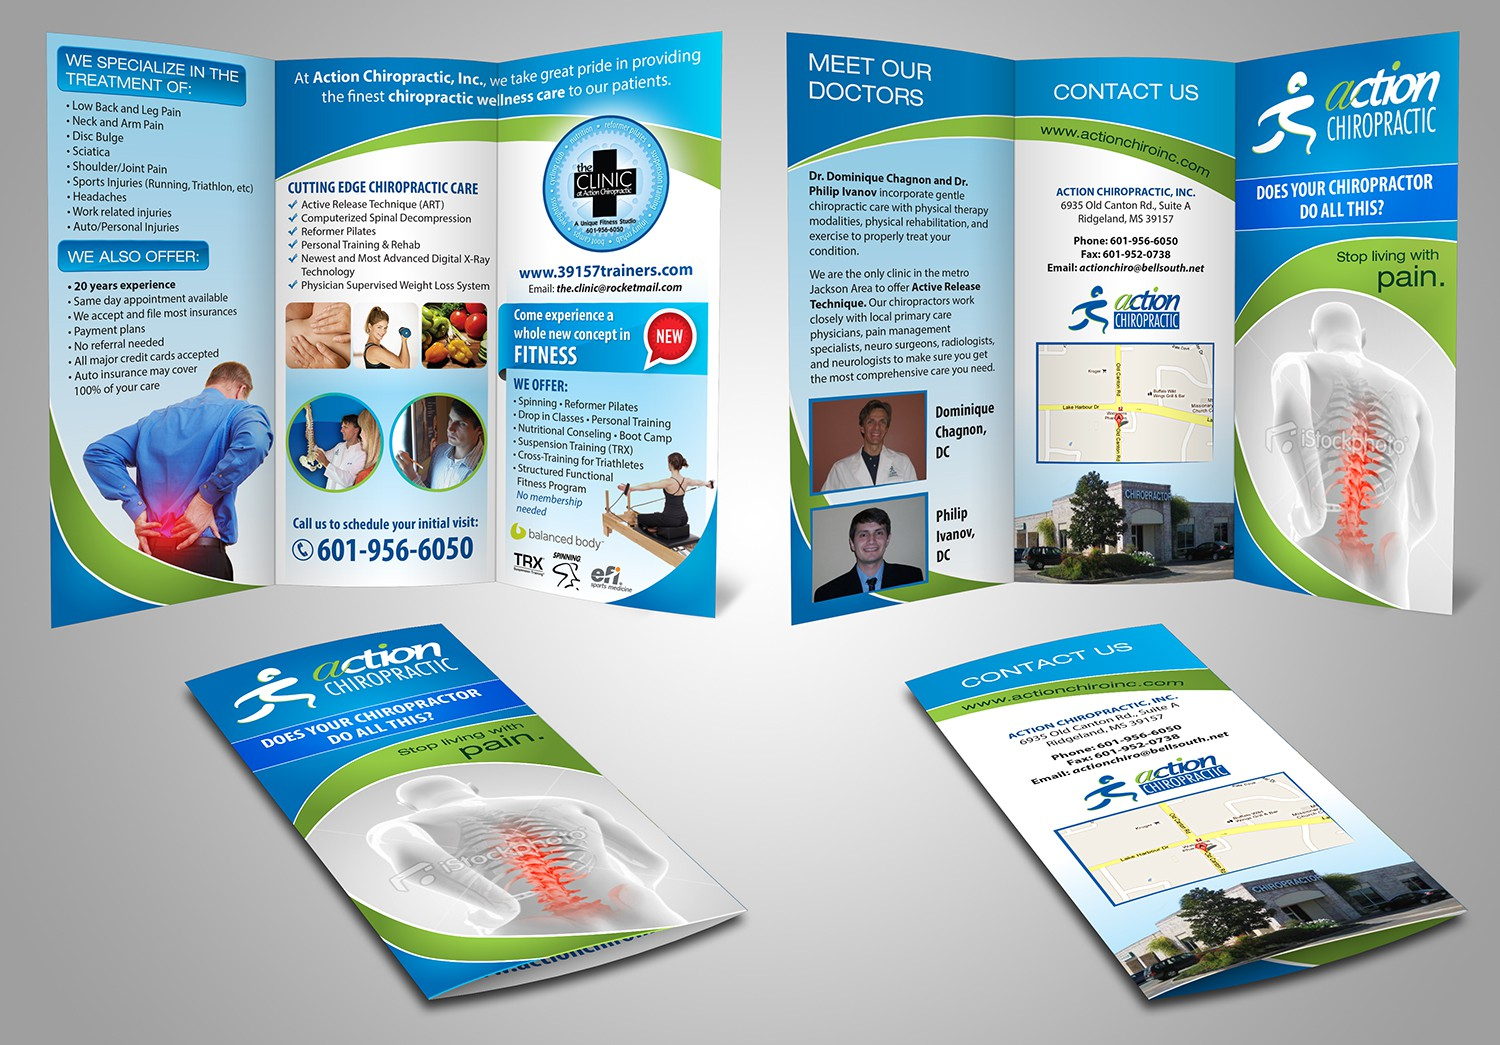 New brochure design wanted for Action Chiropractic Inc.